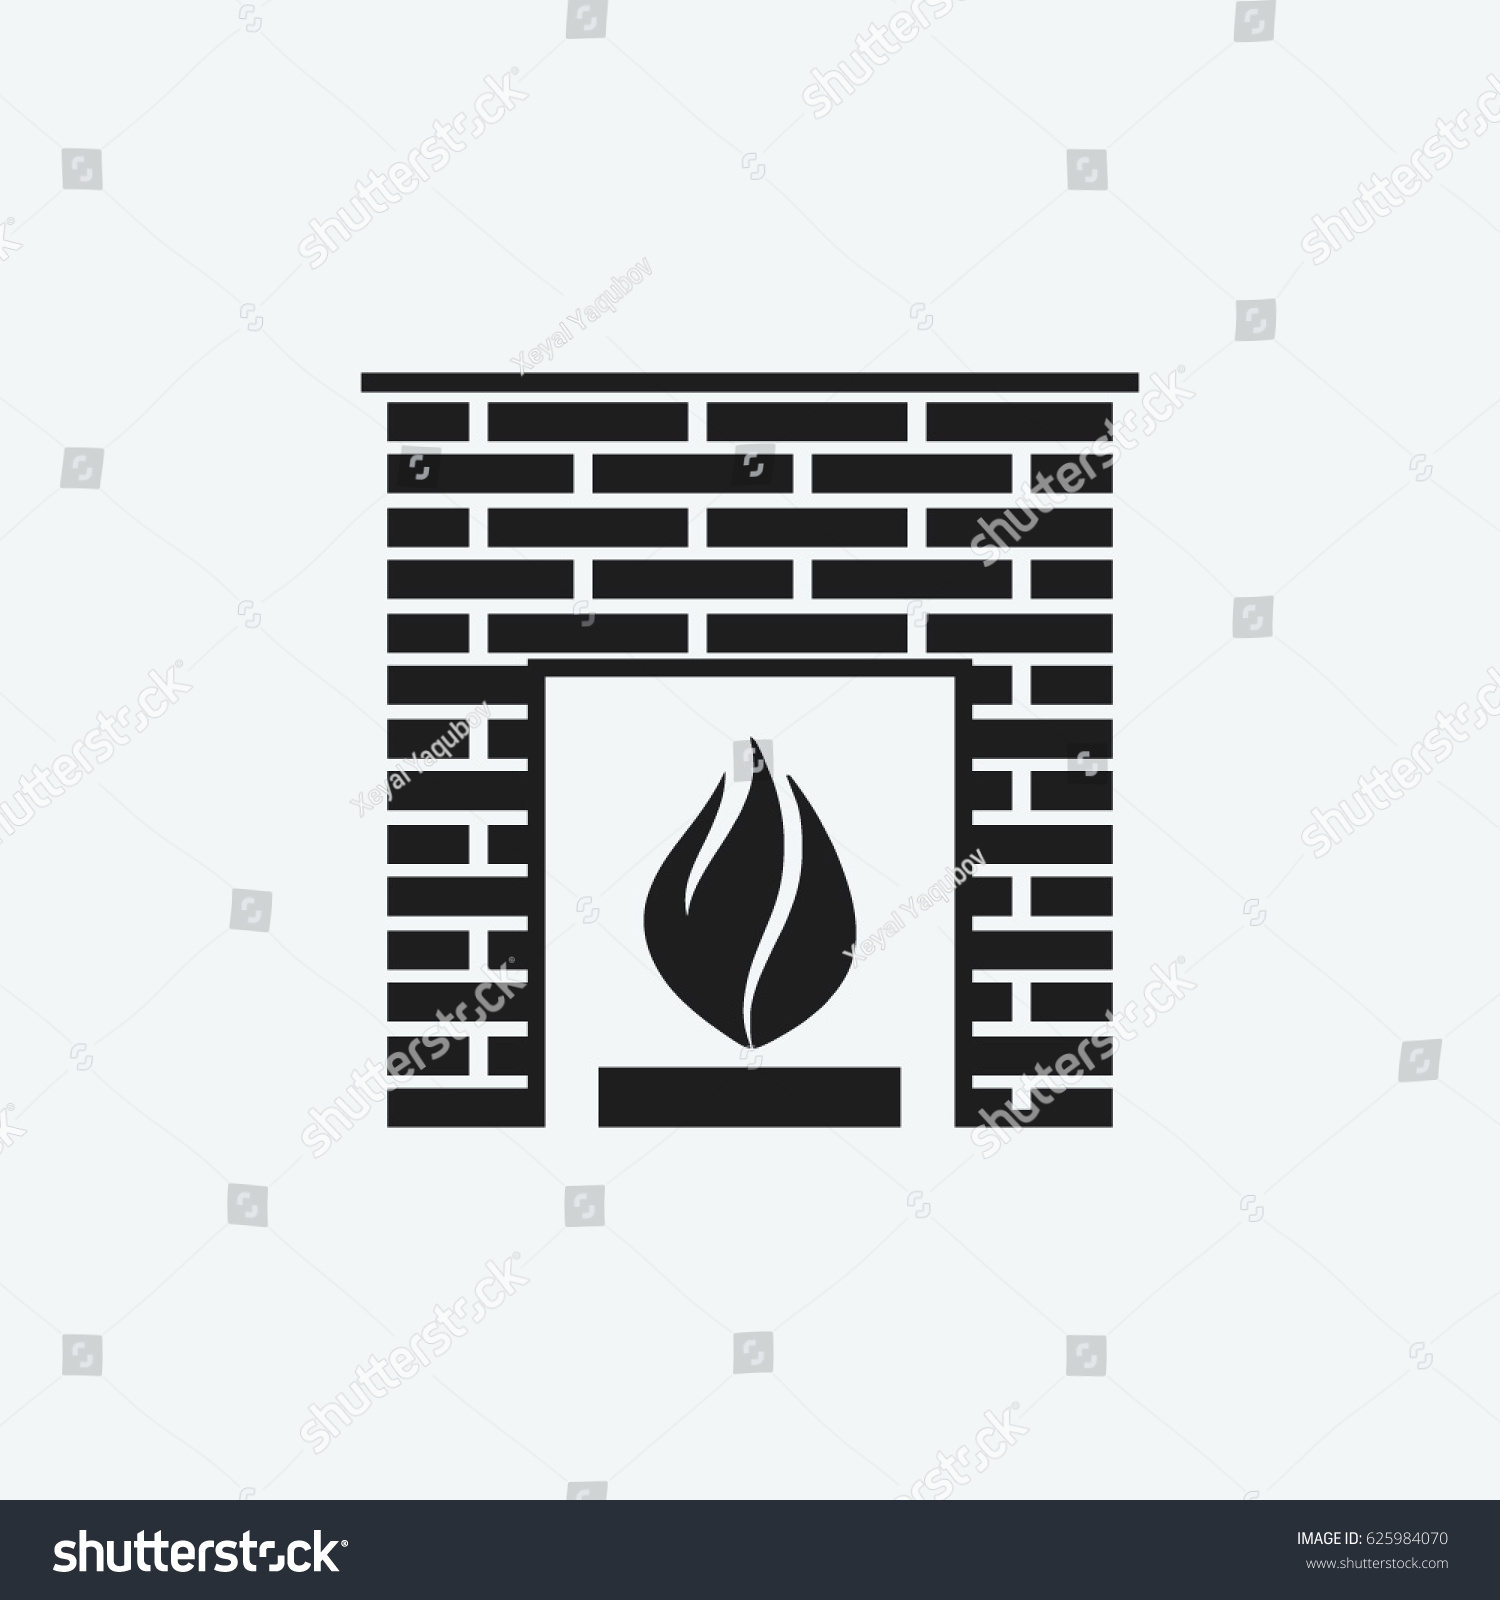 oven stove fireplace icon vector stock vector 625984070 shutterstock